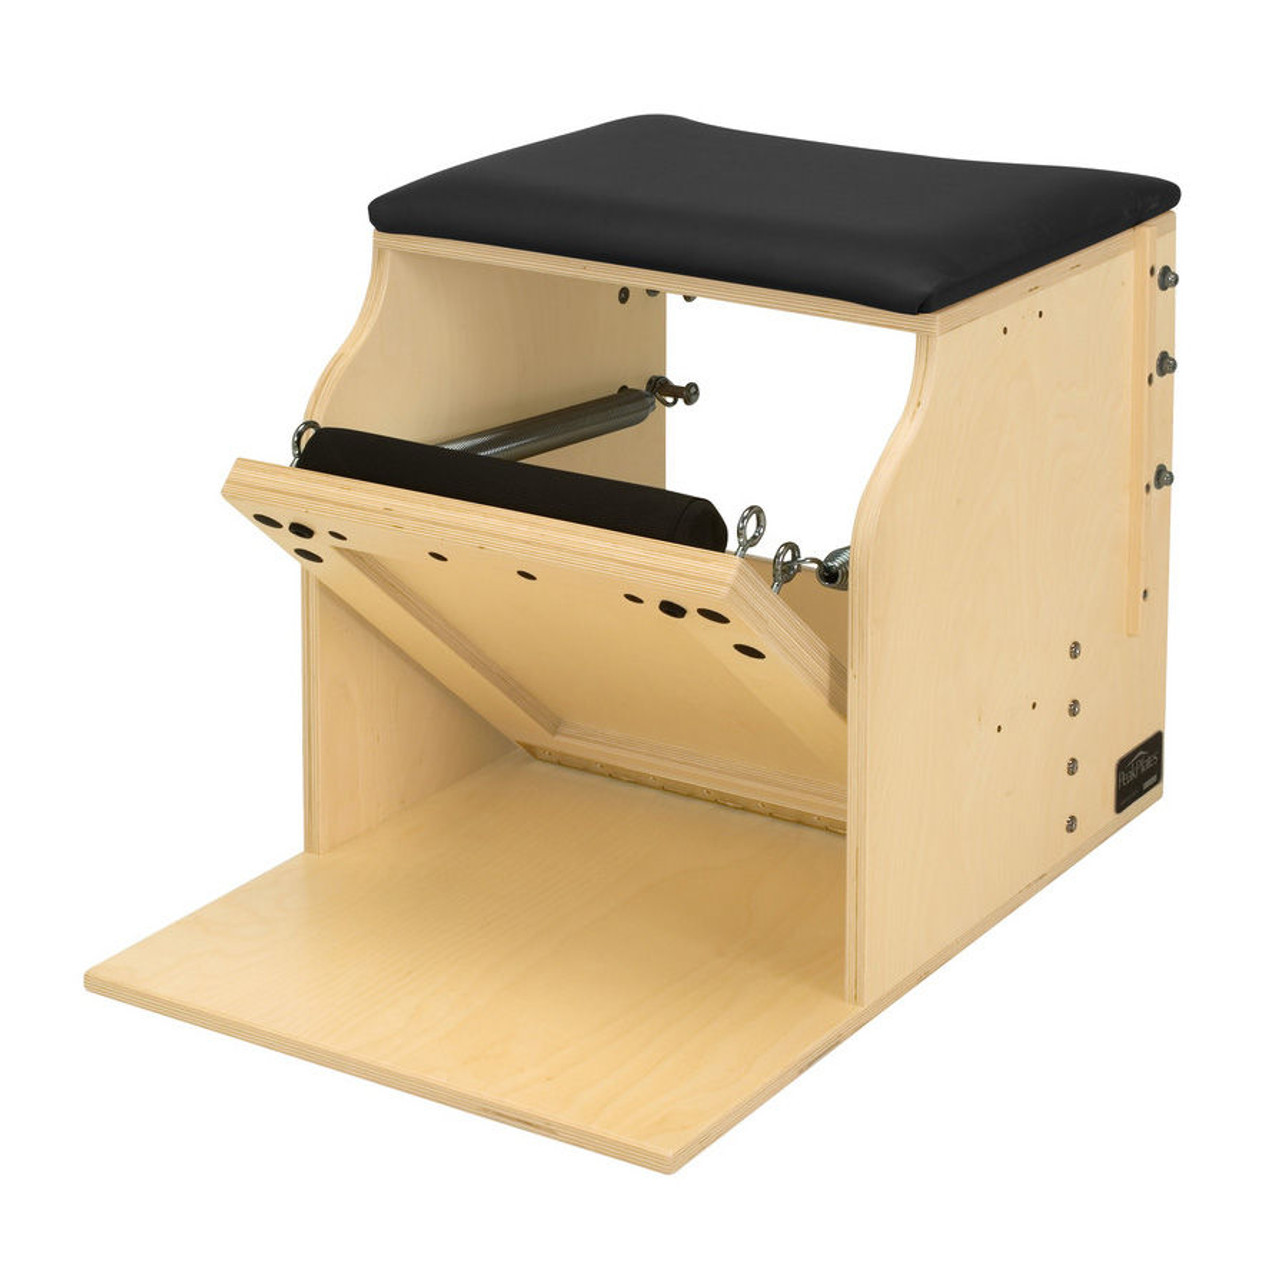 Balanced Body Pilates Chair - Low chair single pedal